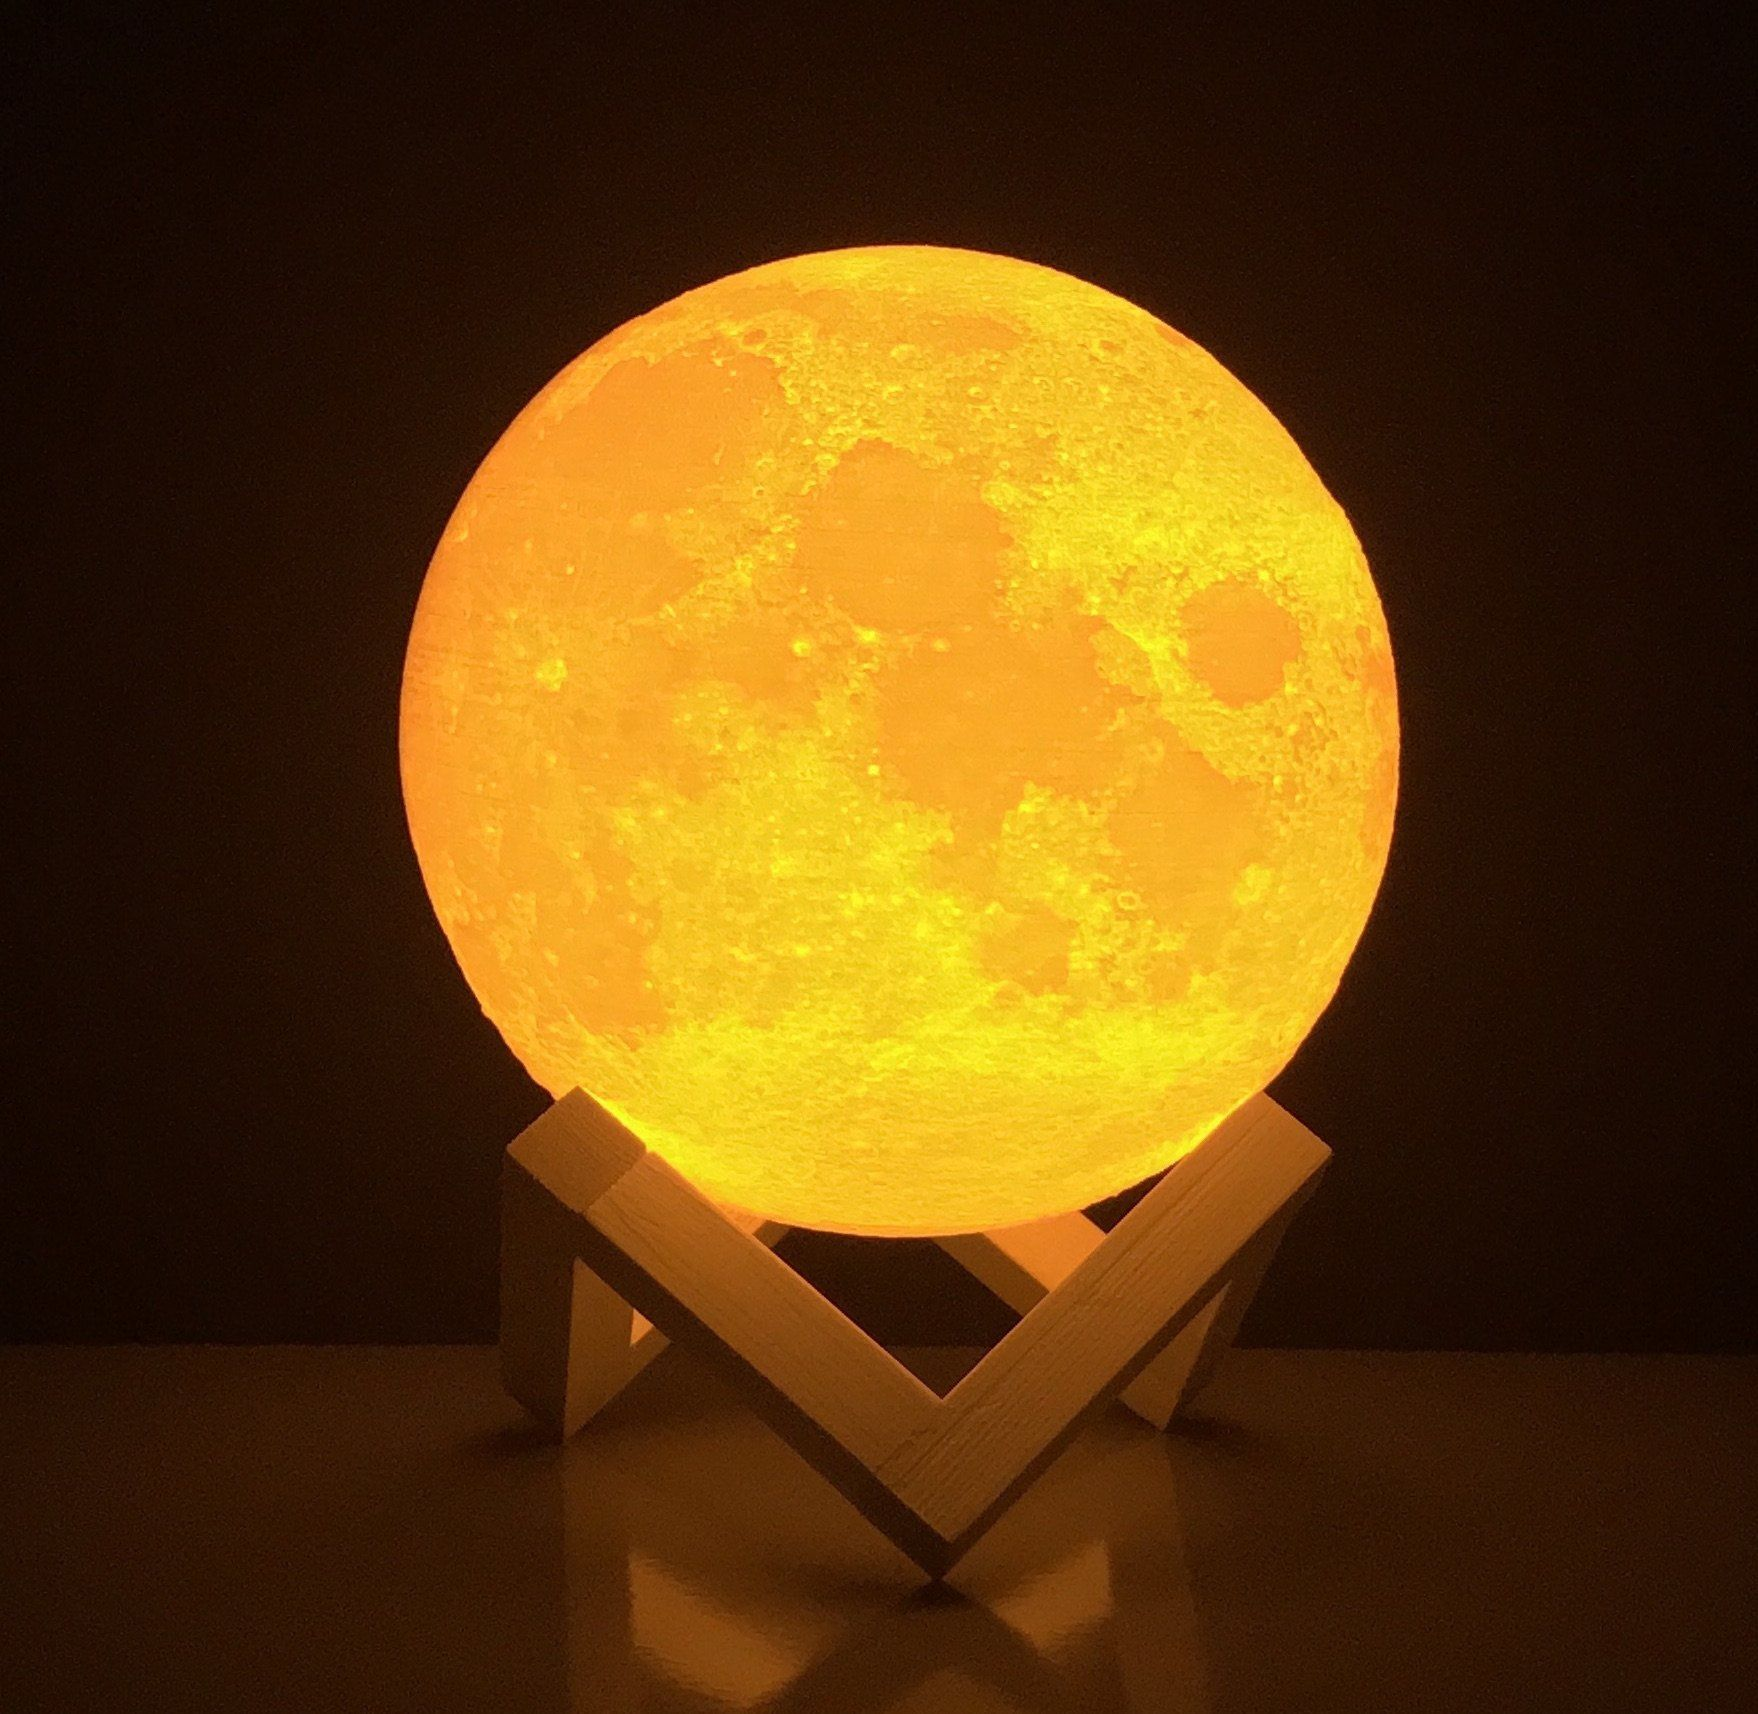 Moon Lamp Round Night Light 3d Printed Free Ebook Dimmable Brightness Touch Sensor Usb Charger Warm And Cool White Lights Amazin Lamp Night Light White Light